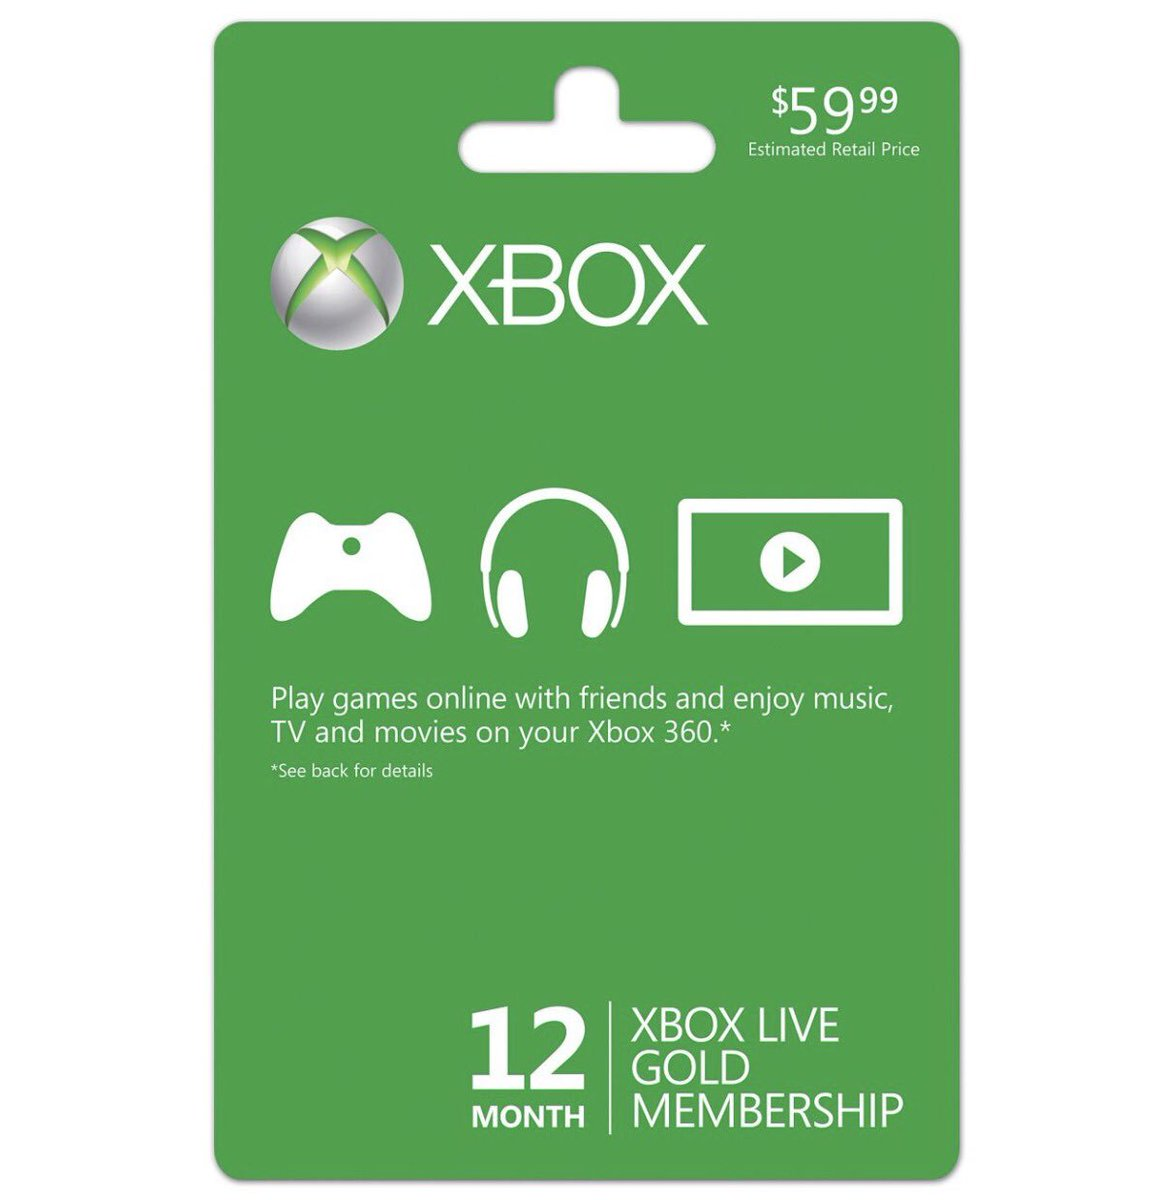 12 months of Xbox Live up for grabs. Just RT and you're entered. #Xbox https://t.co/d3e2OySBAi